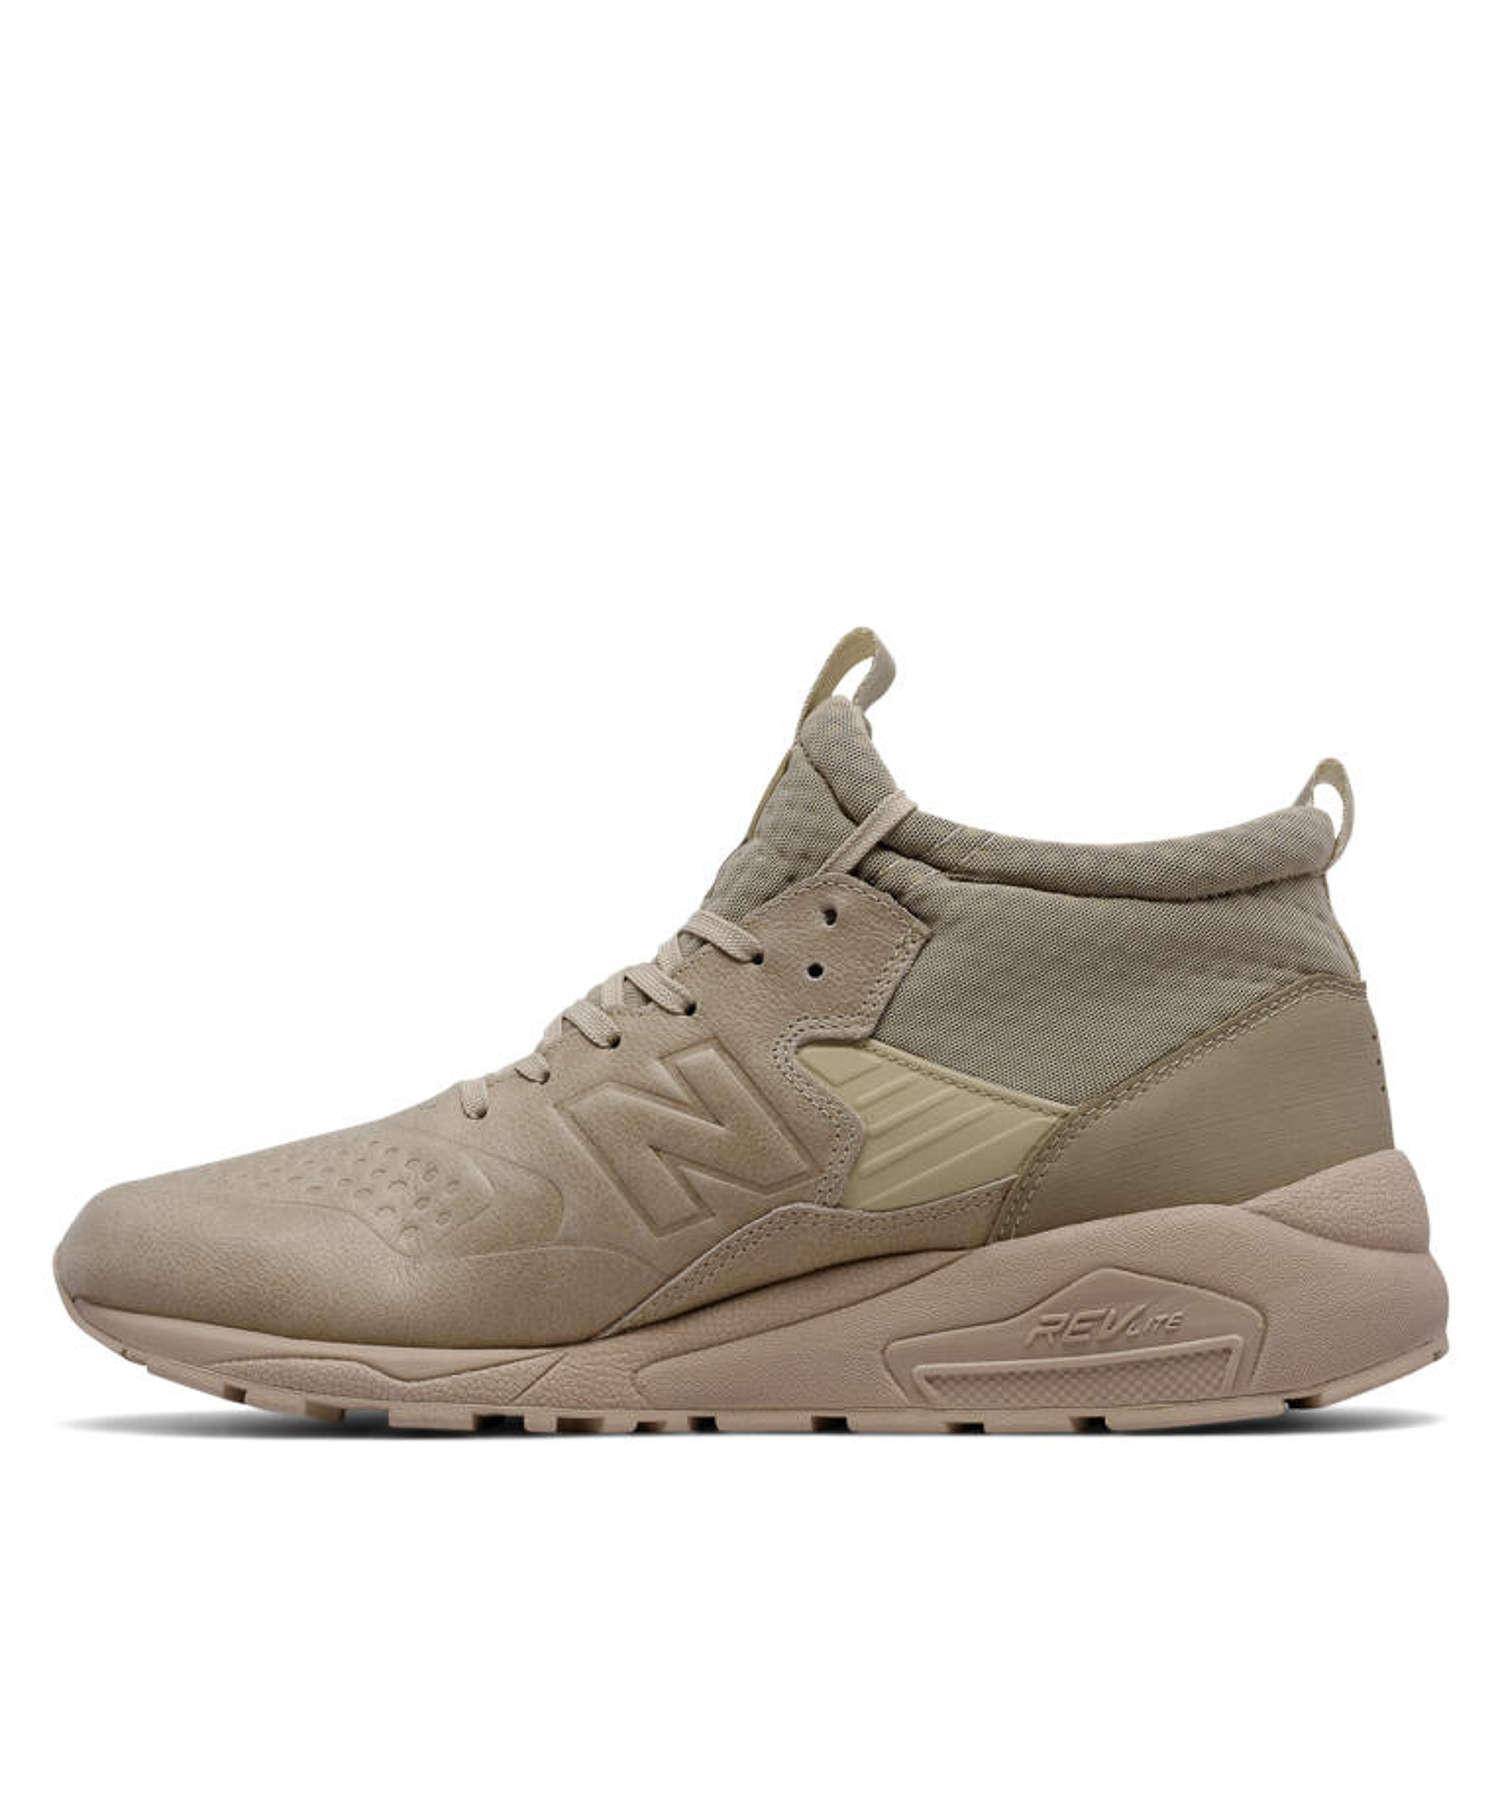 new balance men's 580 deconstructed mid trainers